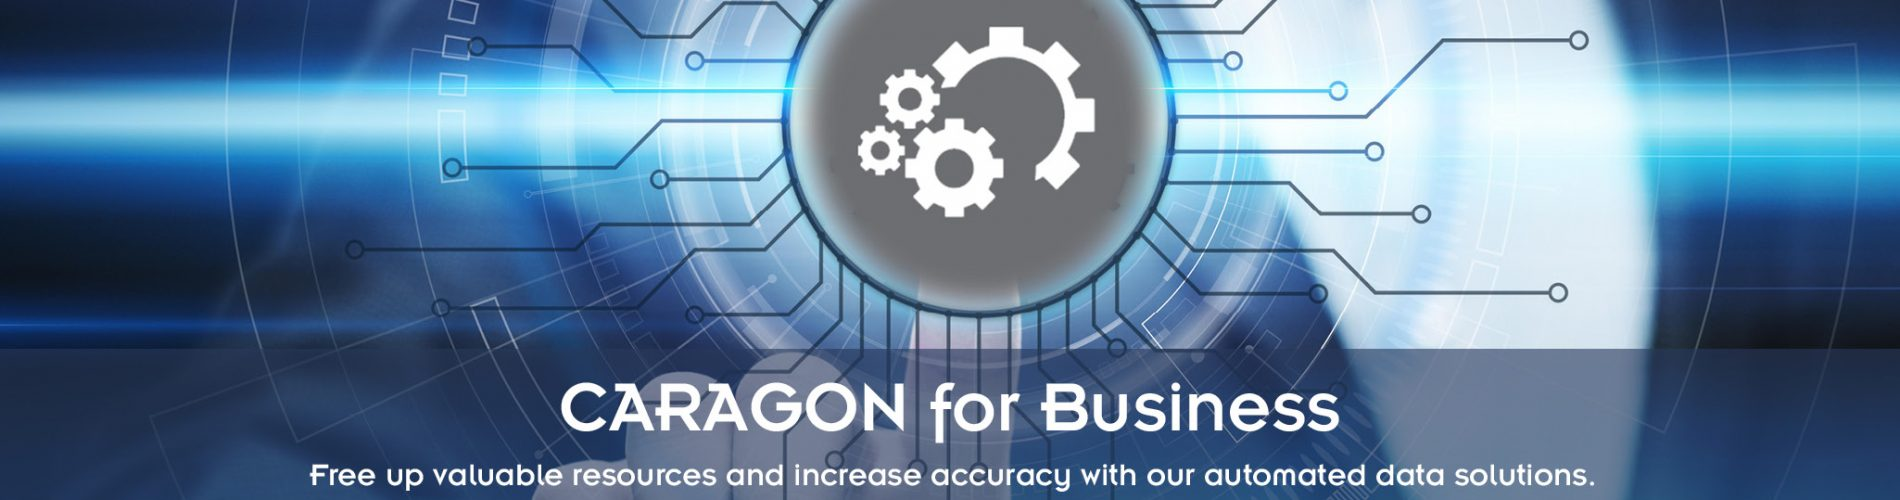 CARAGON for Business